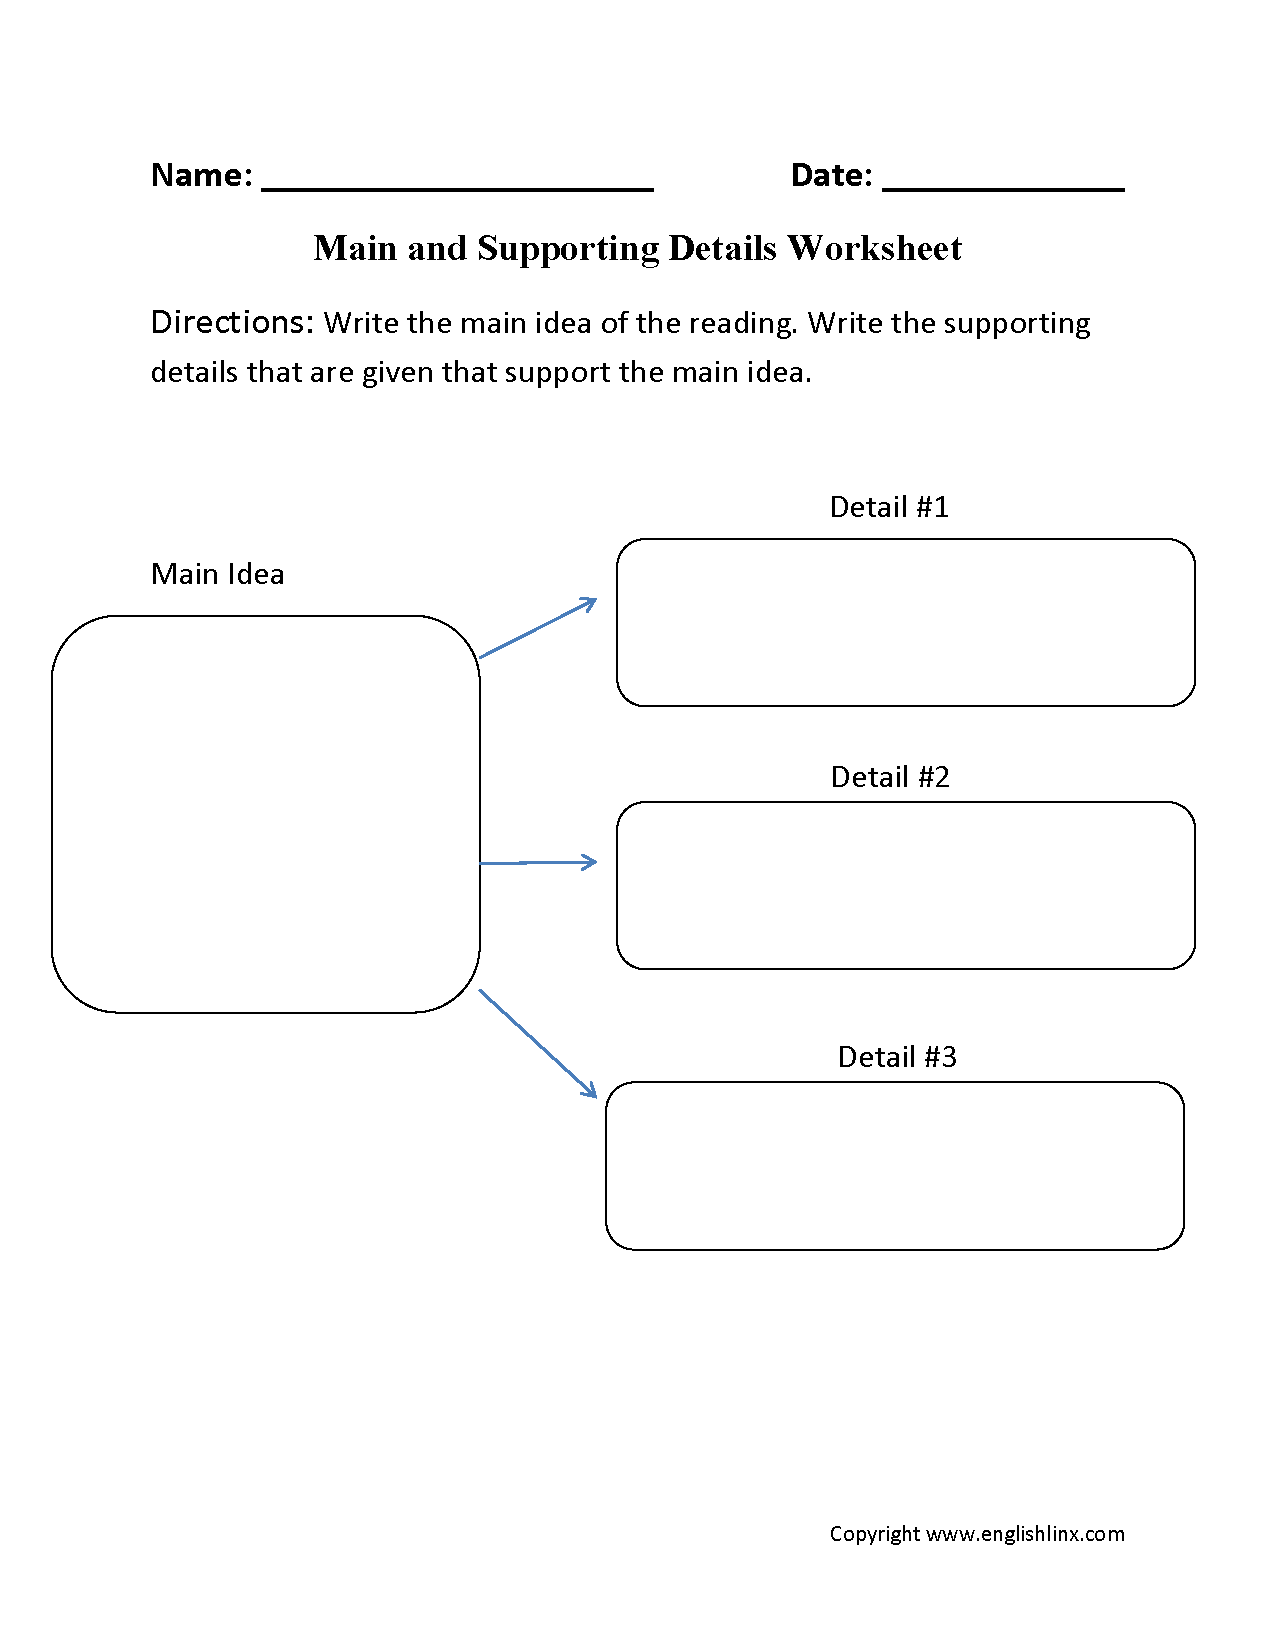 13 Best Images Of Idea Supporting And Main Worksheets